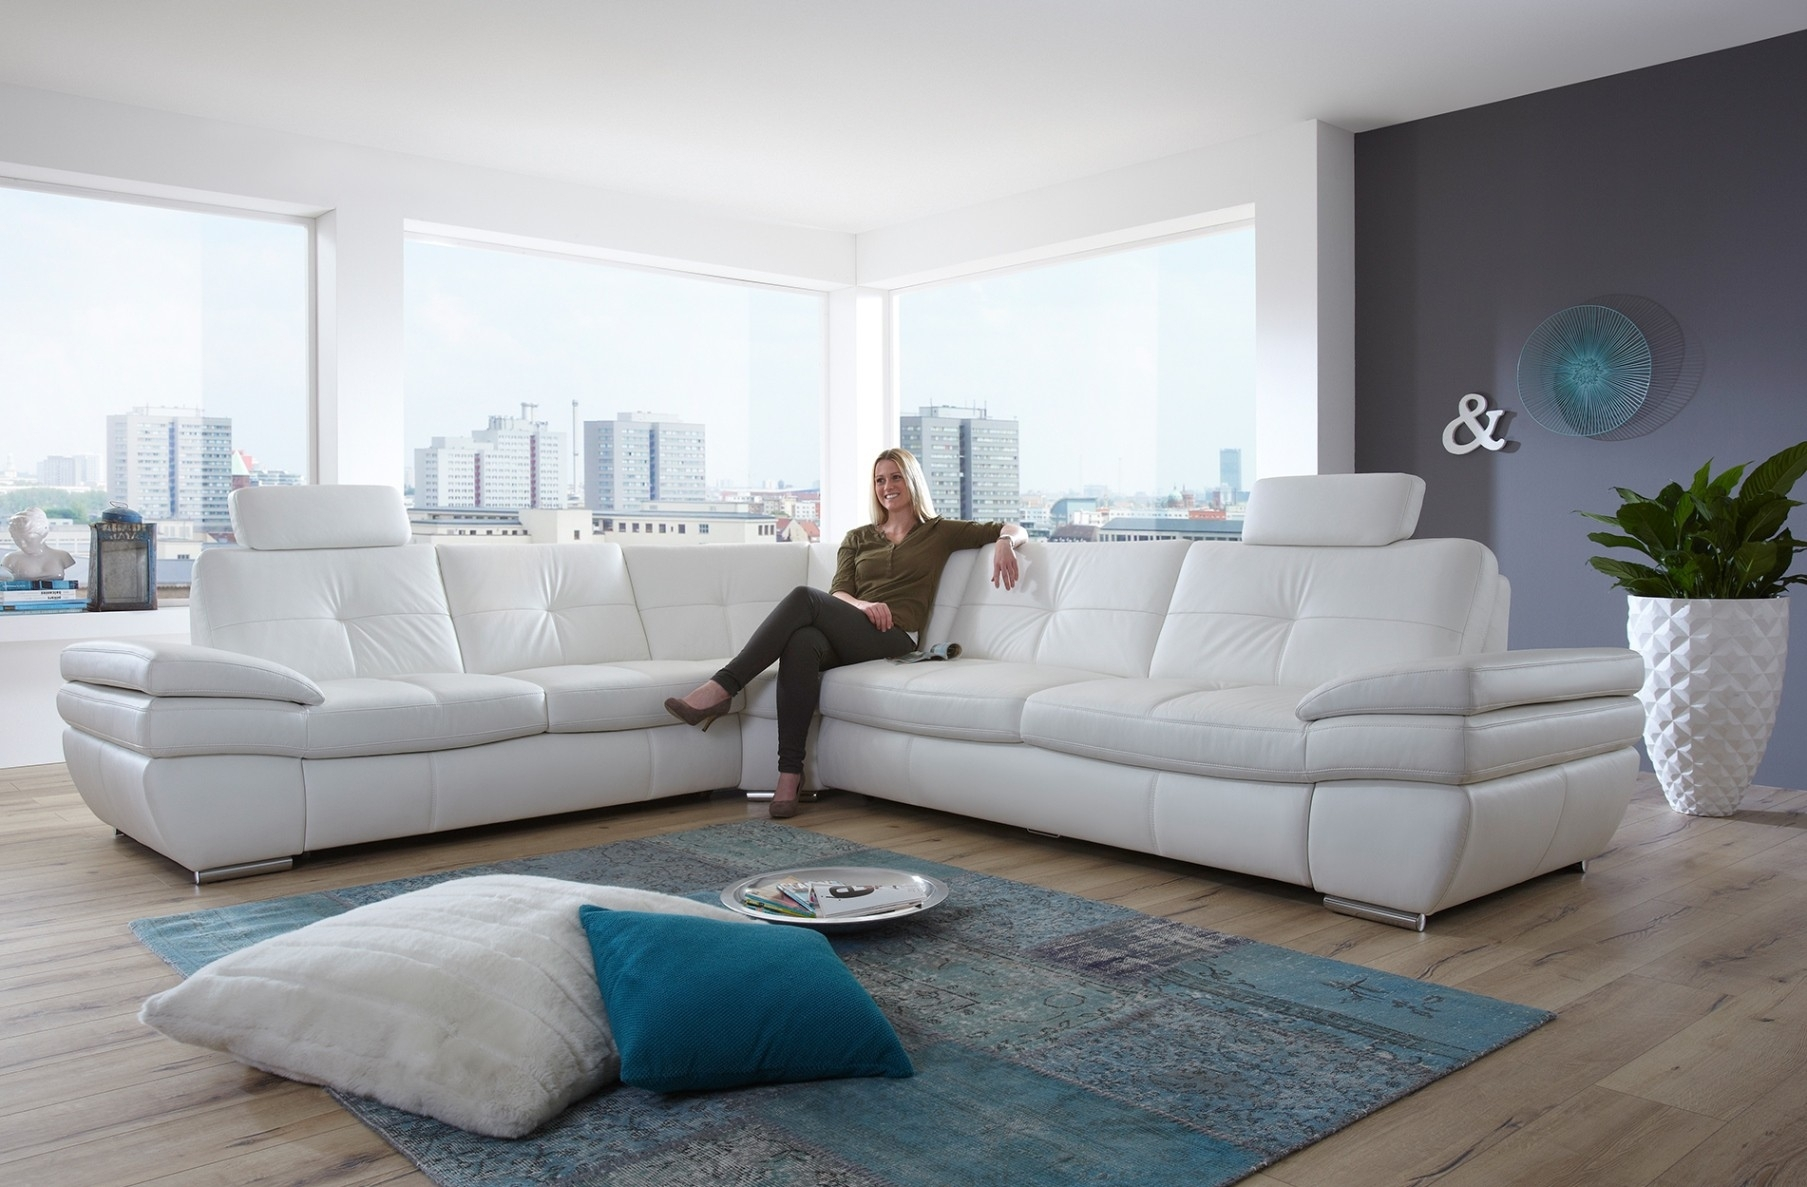 Furniture : Sectional Sleeper Sofa Queen Has One Of The Best Kind Of Intended For Everett Wa Sectional Sofas (View 8 of 10)